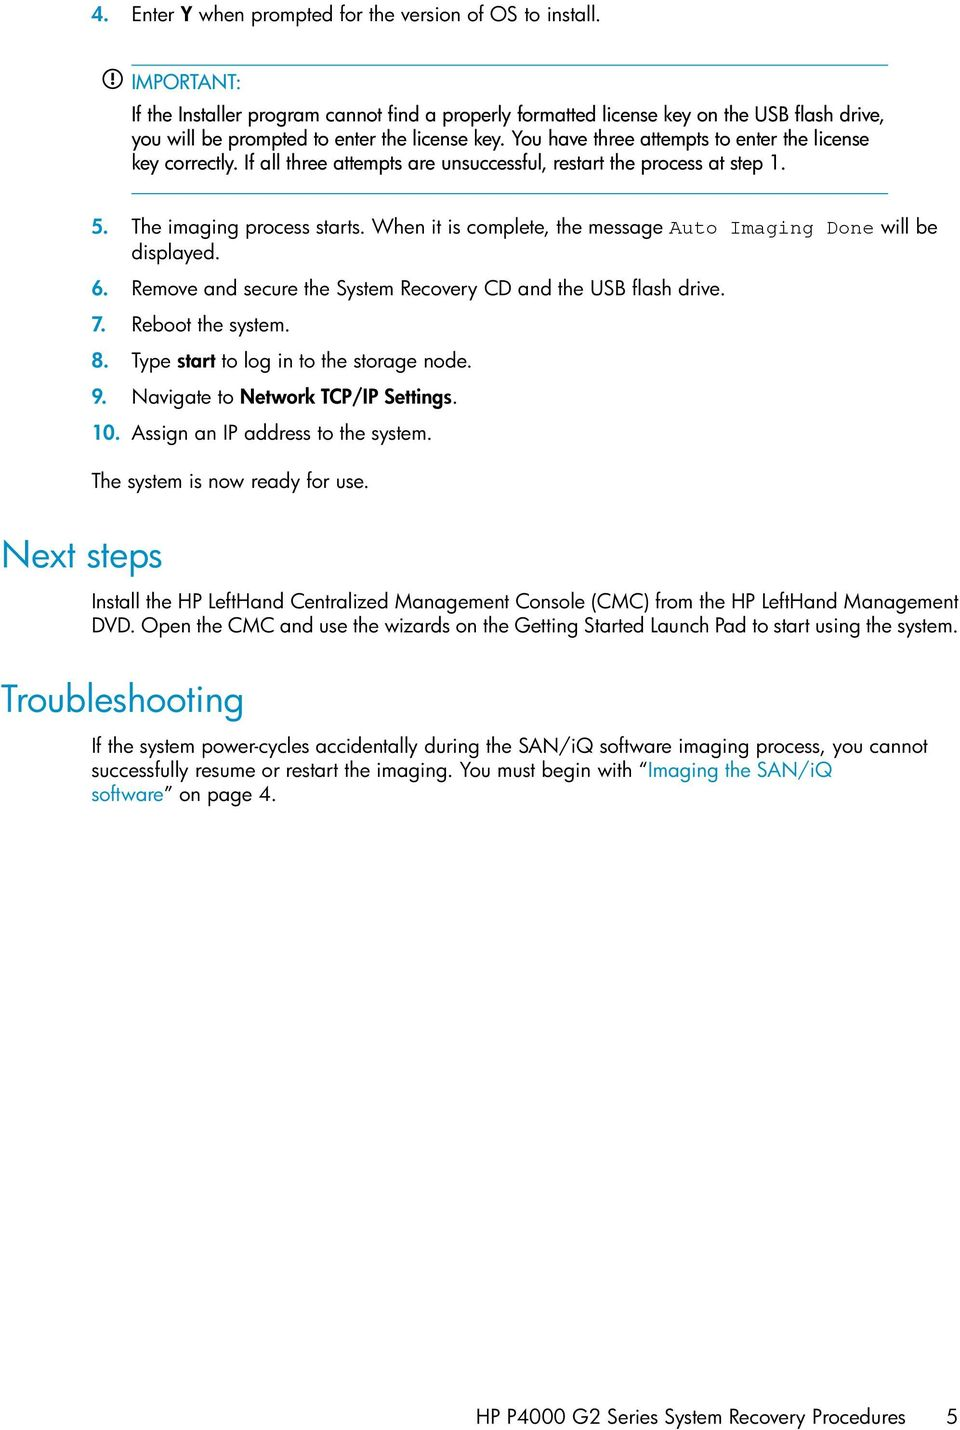 HP P4000 G2 Series System Recovery Procedures - PDF